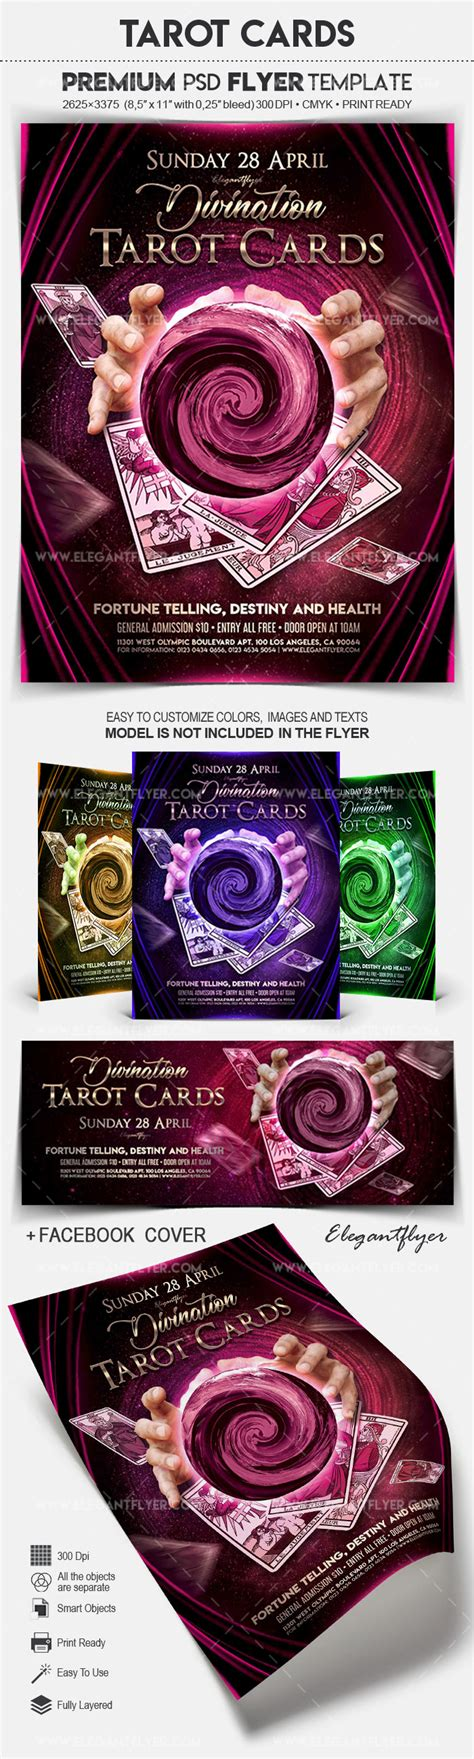 tarot cards flyer psd template by elegantflyer